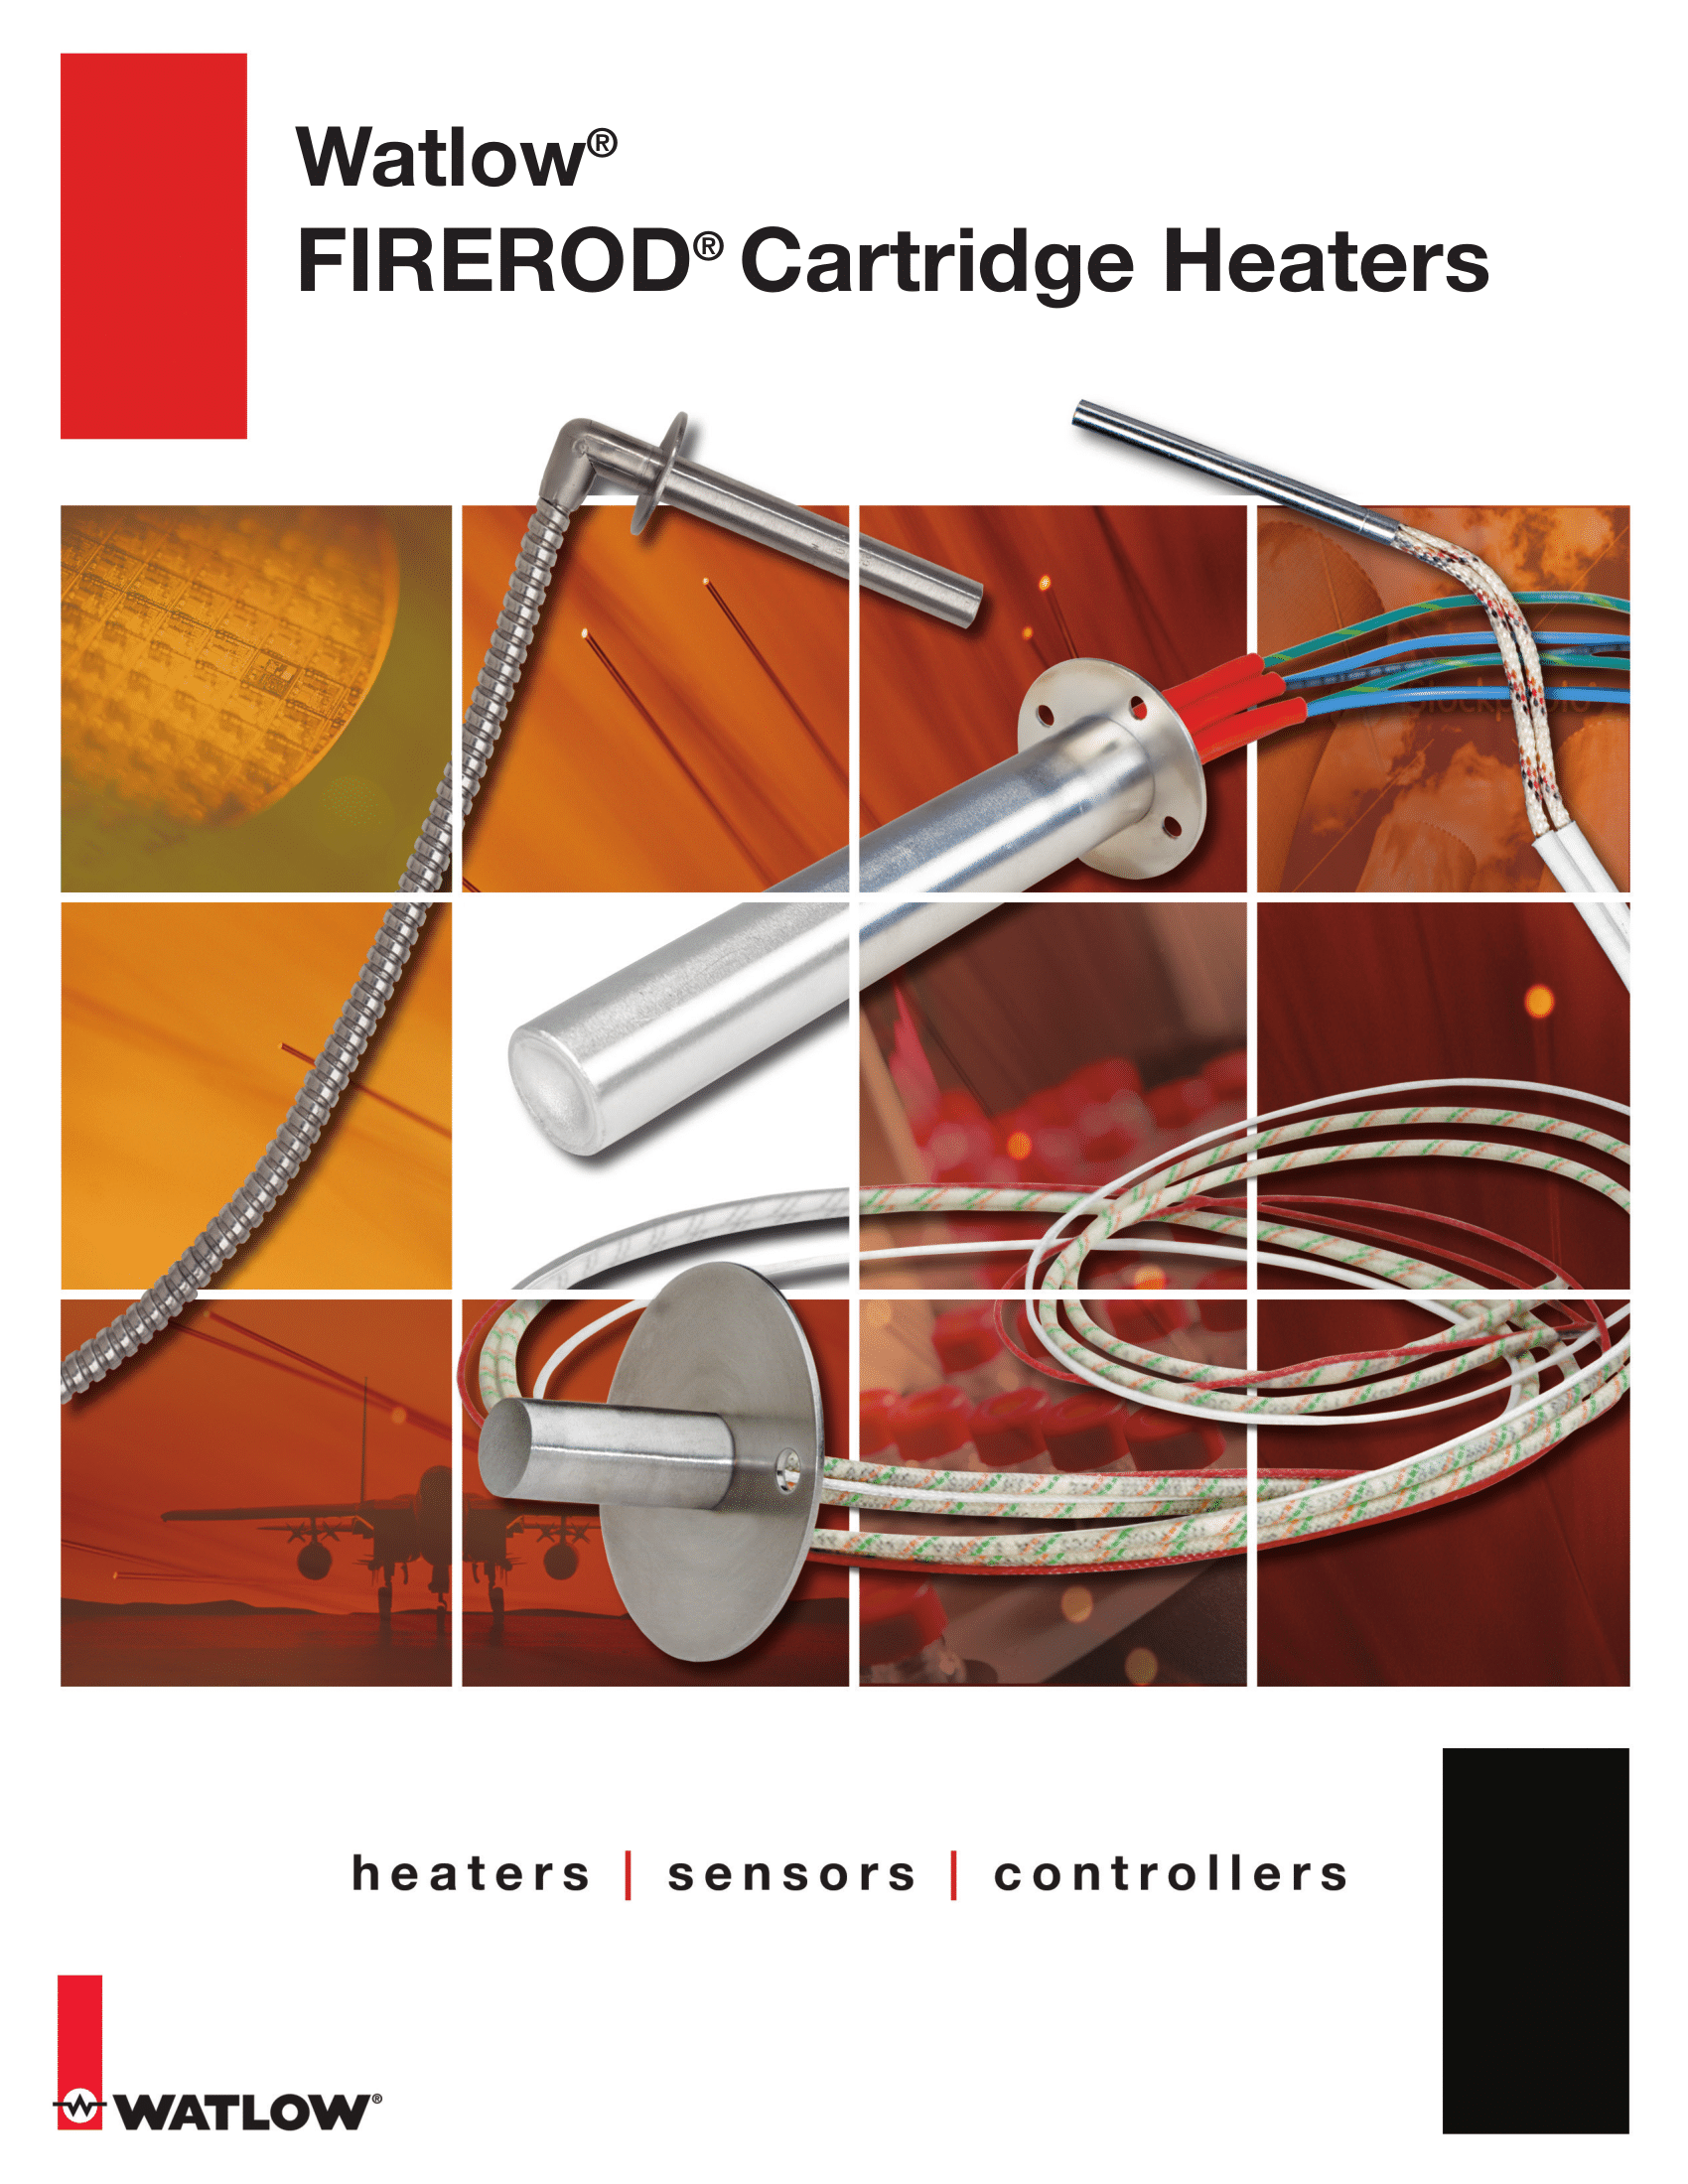 Firerod-Cartridge-Heaters-BROCHURE-01